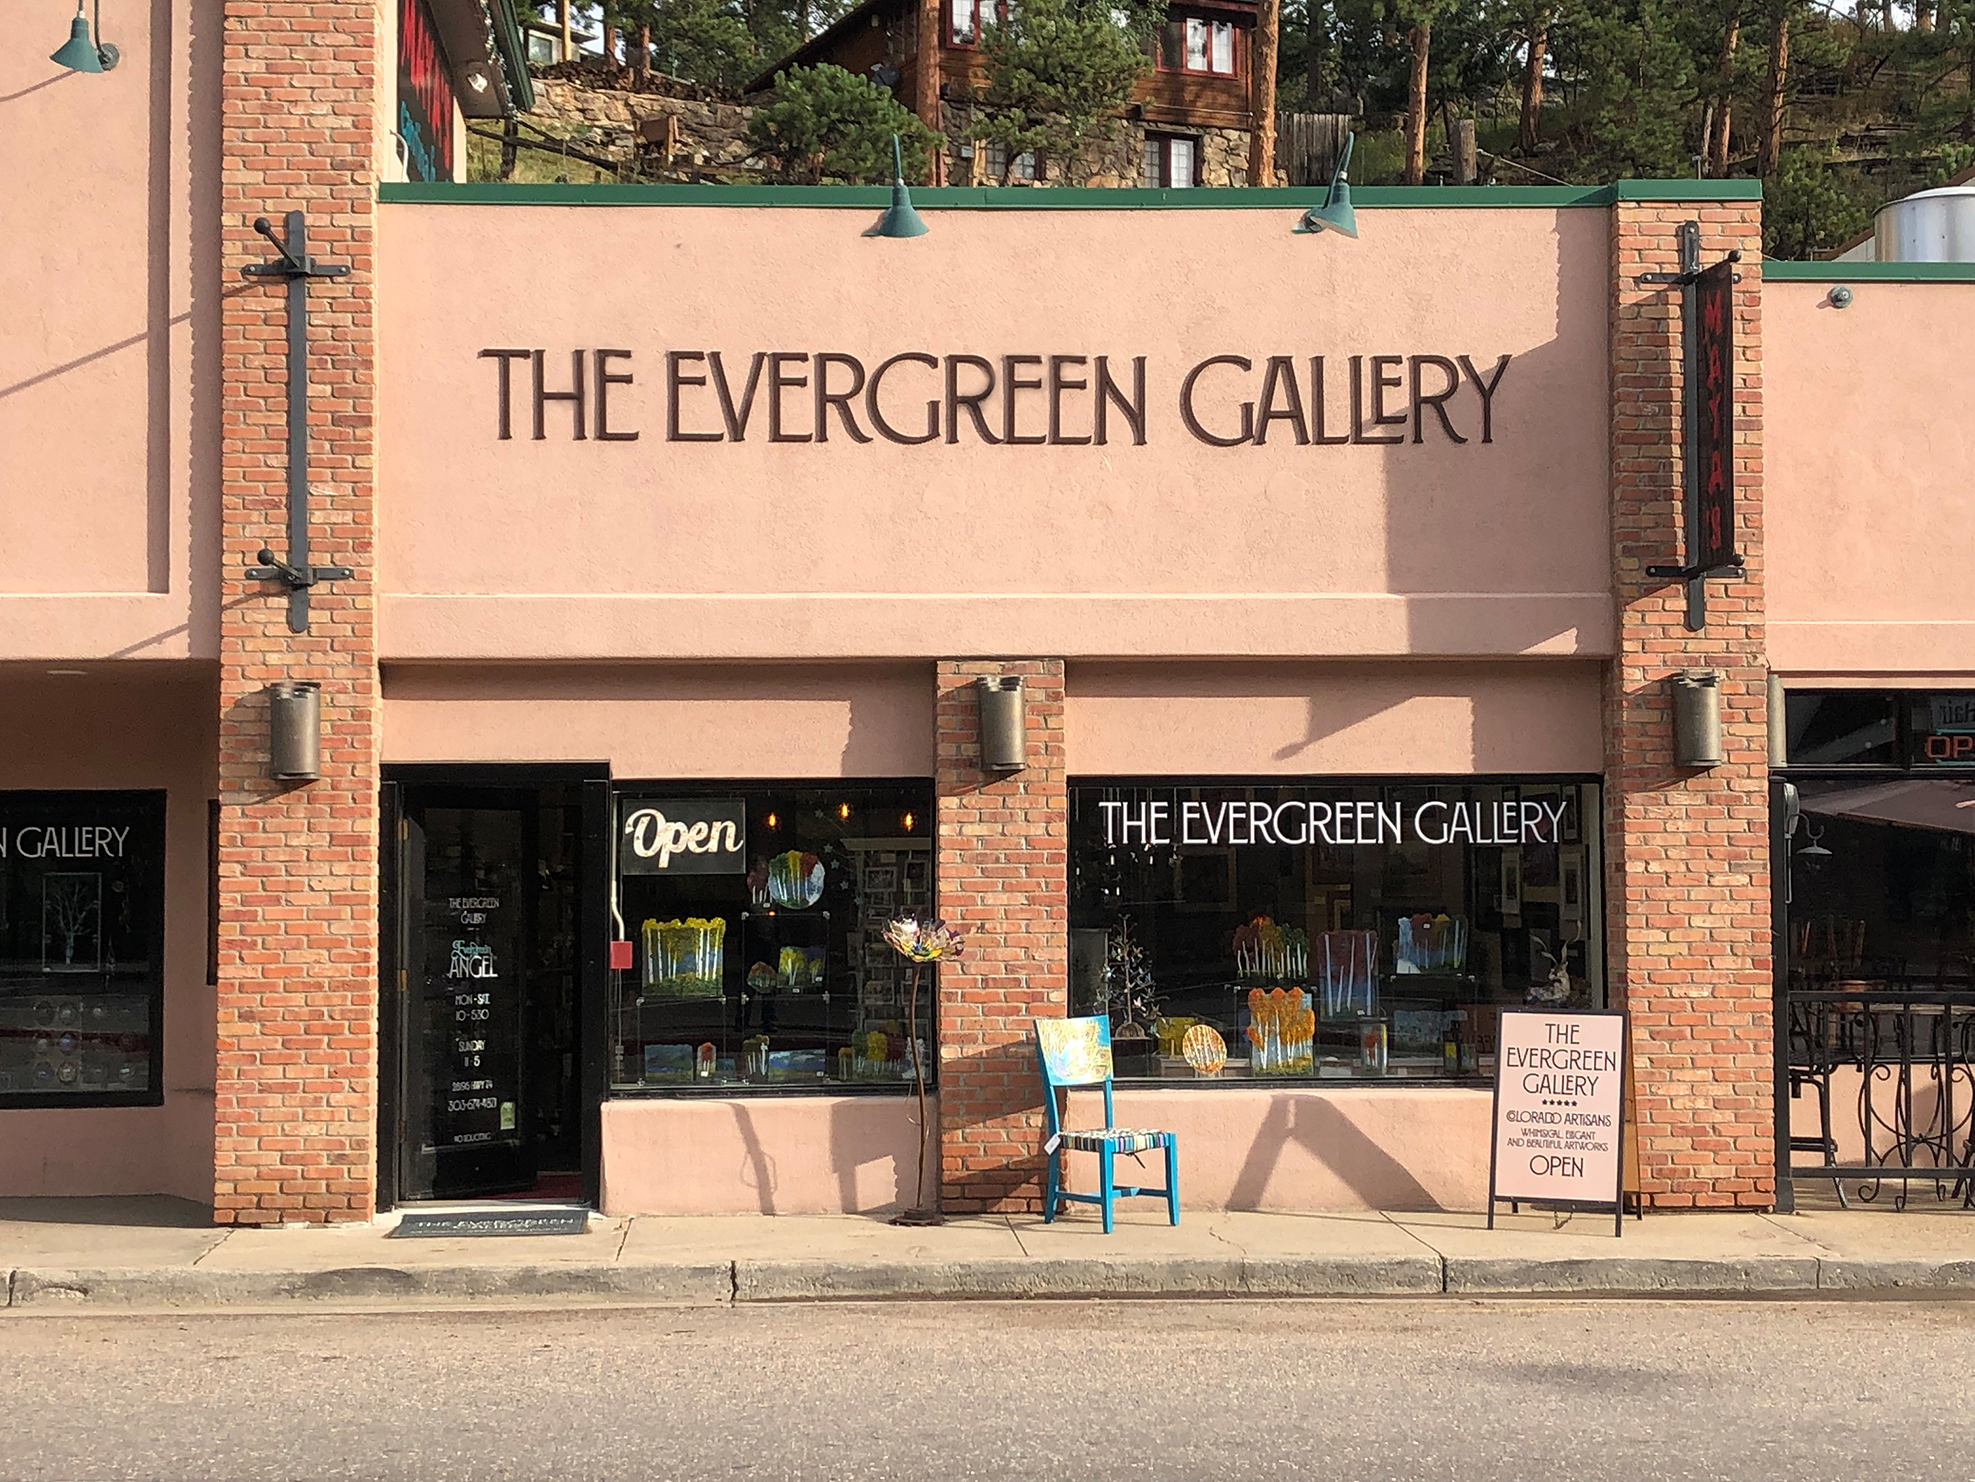 The Storefront Image of the Evergreen Gallery